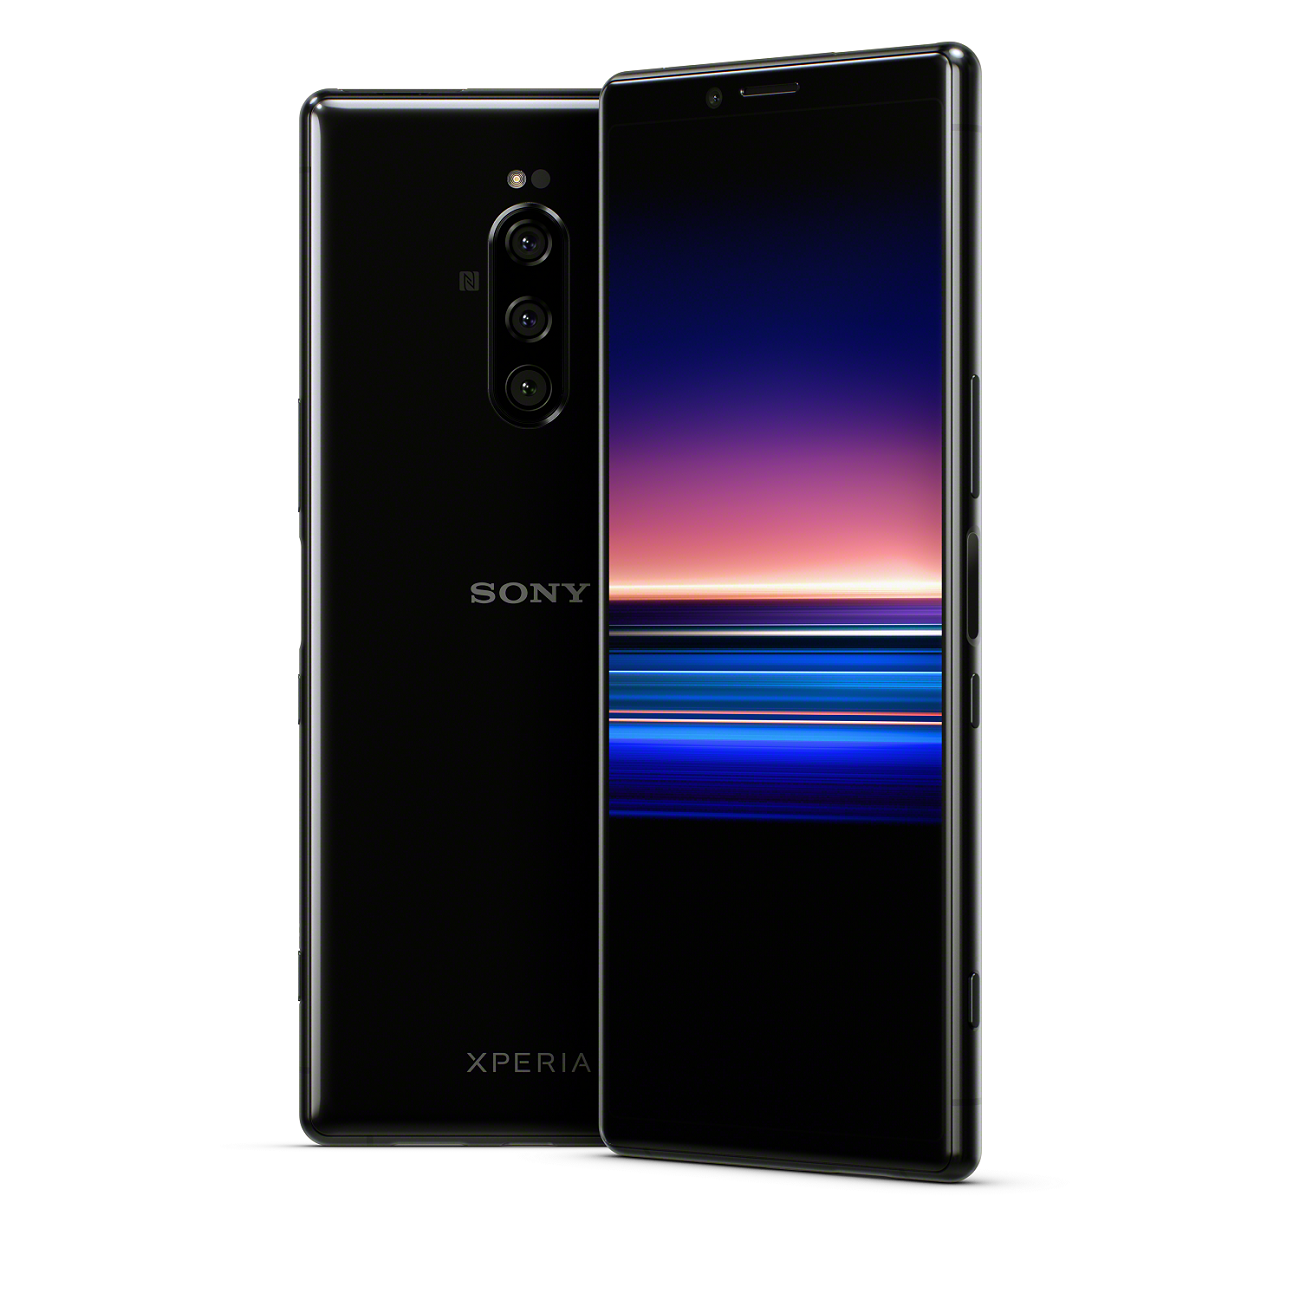 Sony launches flagship Xperia 1 for creative entertainment experiences with unprecedented professional-grade technologies